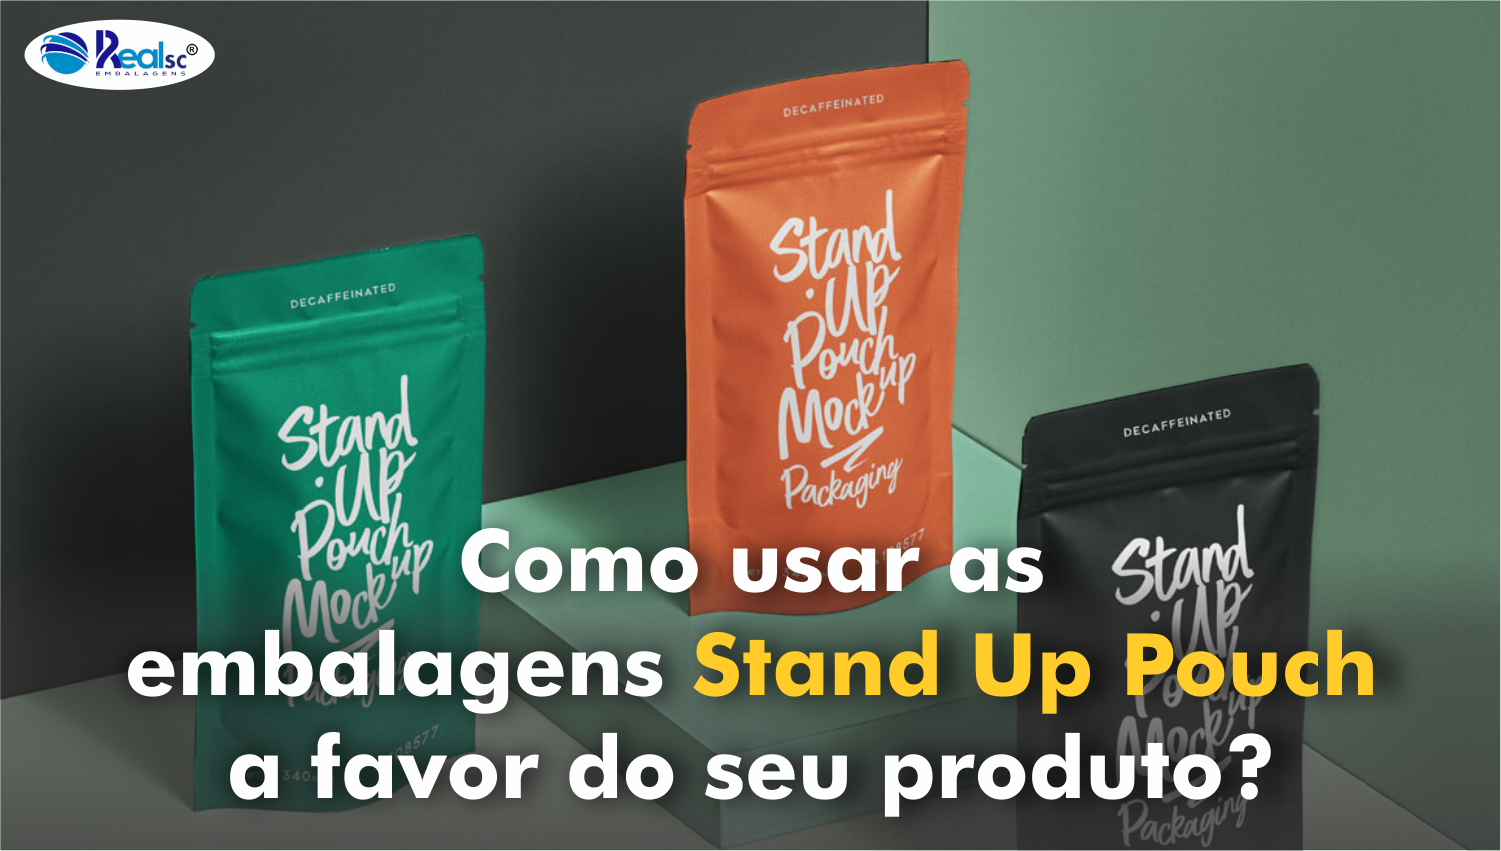 embalagem stand up pouch